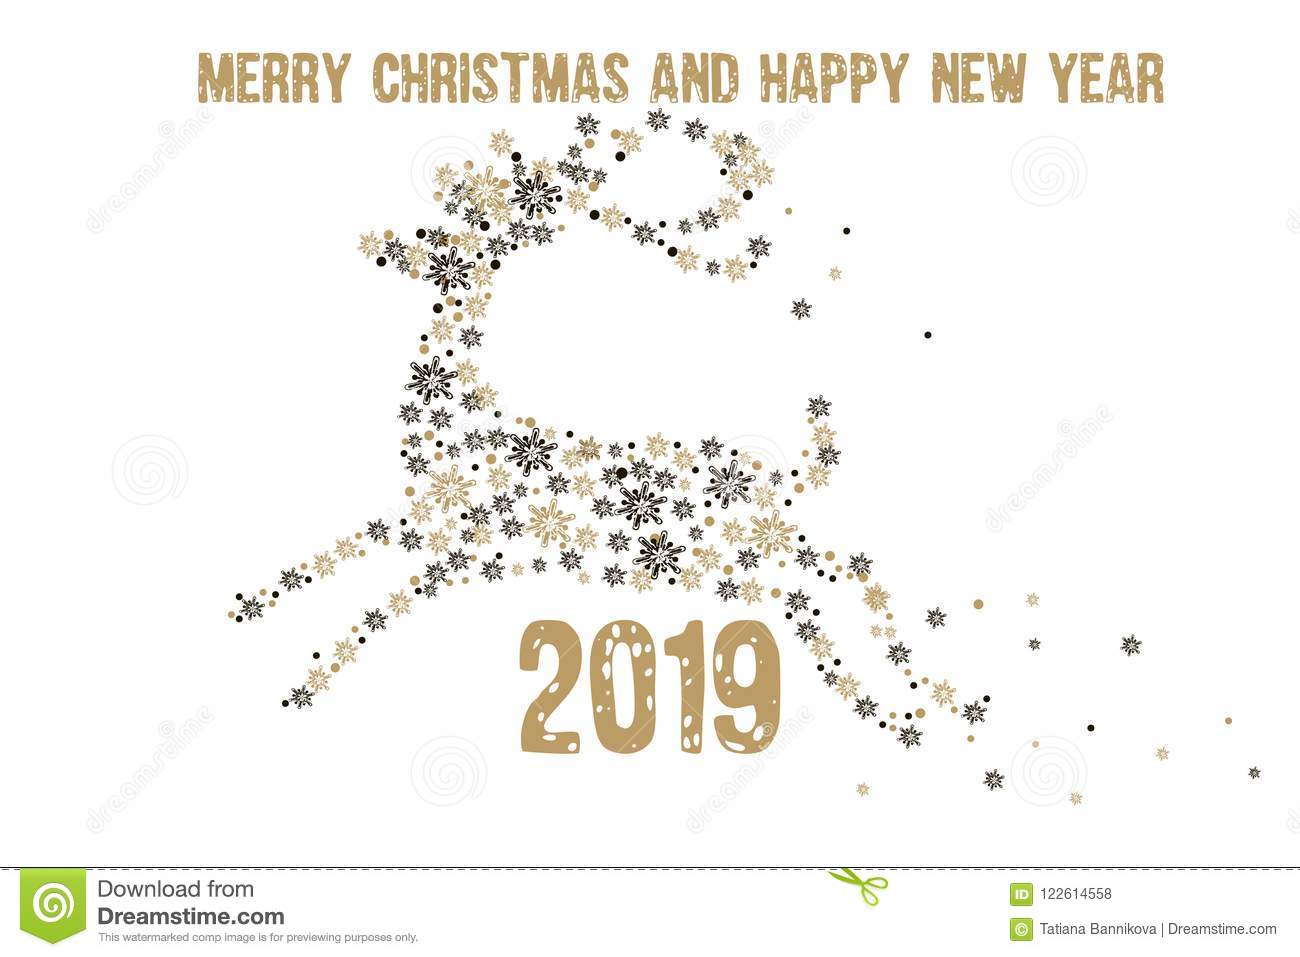 Christmas And New Year Greetings 2019 Merry Christmas And Happy New Year 2019 Greeting Card. Golden De